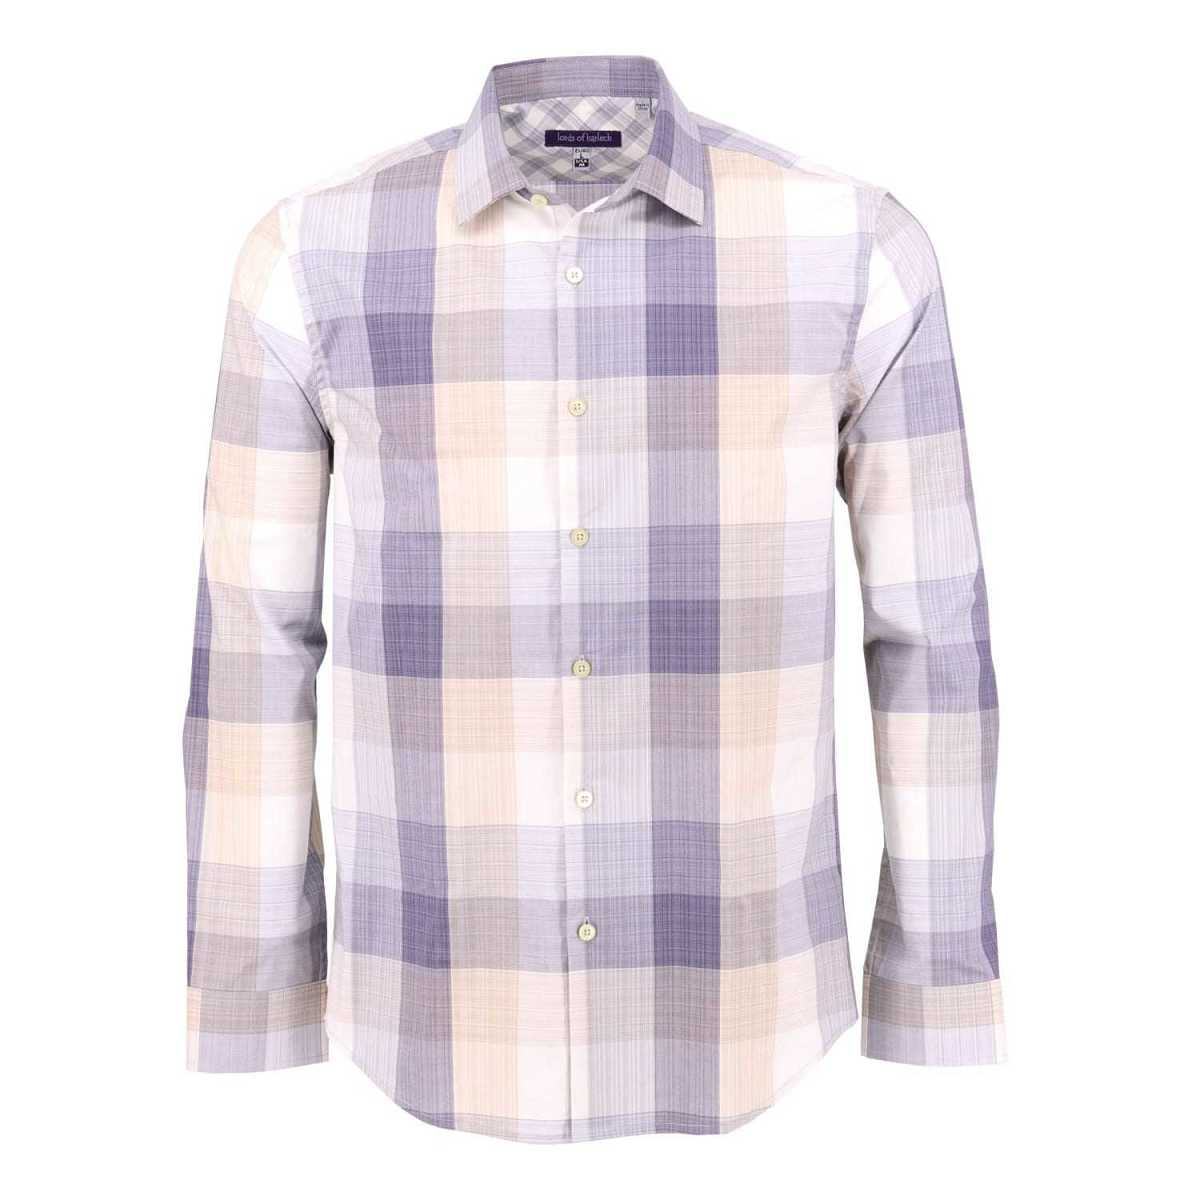 Lords of Harlech - Nigel Shirt In Block Natural Plaid - Wolf And Badger - GOOFASH